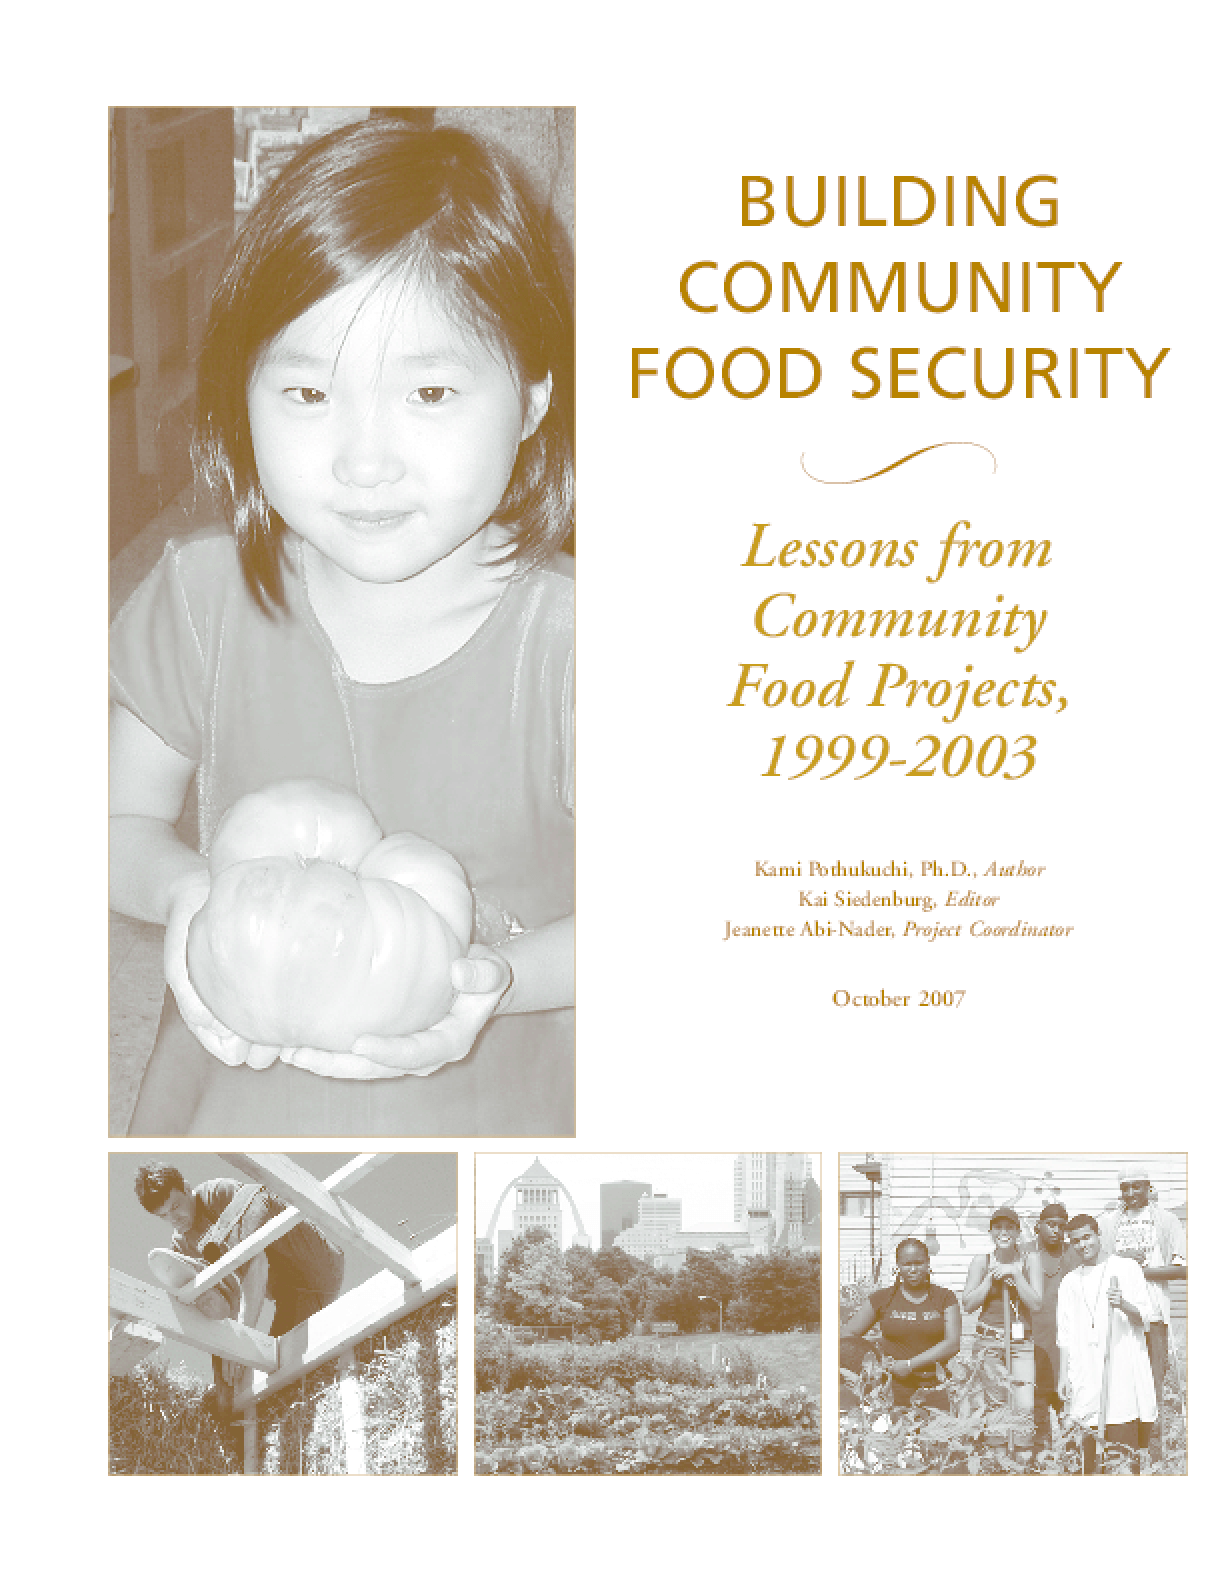 Building Community Food Security: Lessons Learned from Community Food Projects, 1999-2003